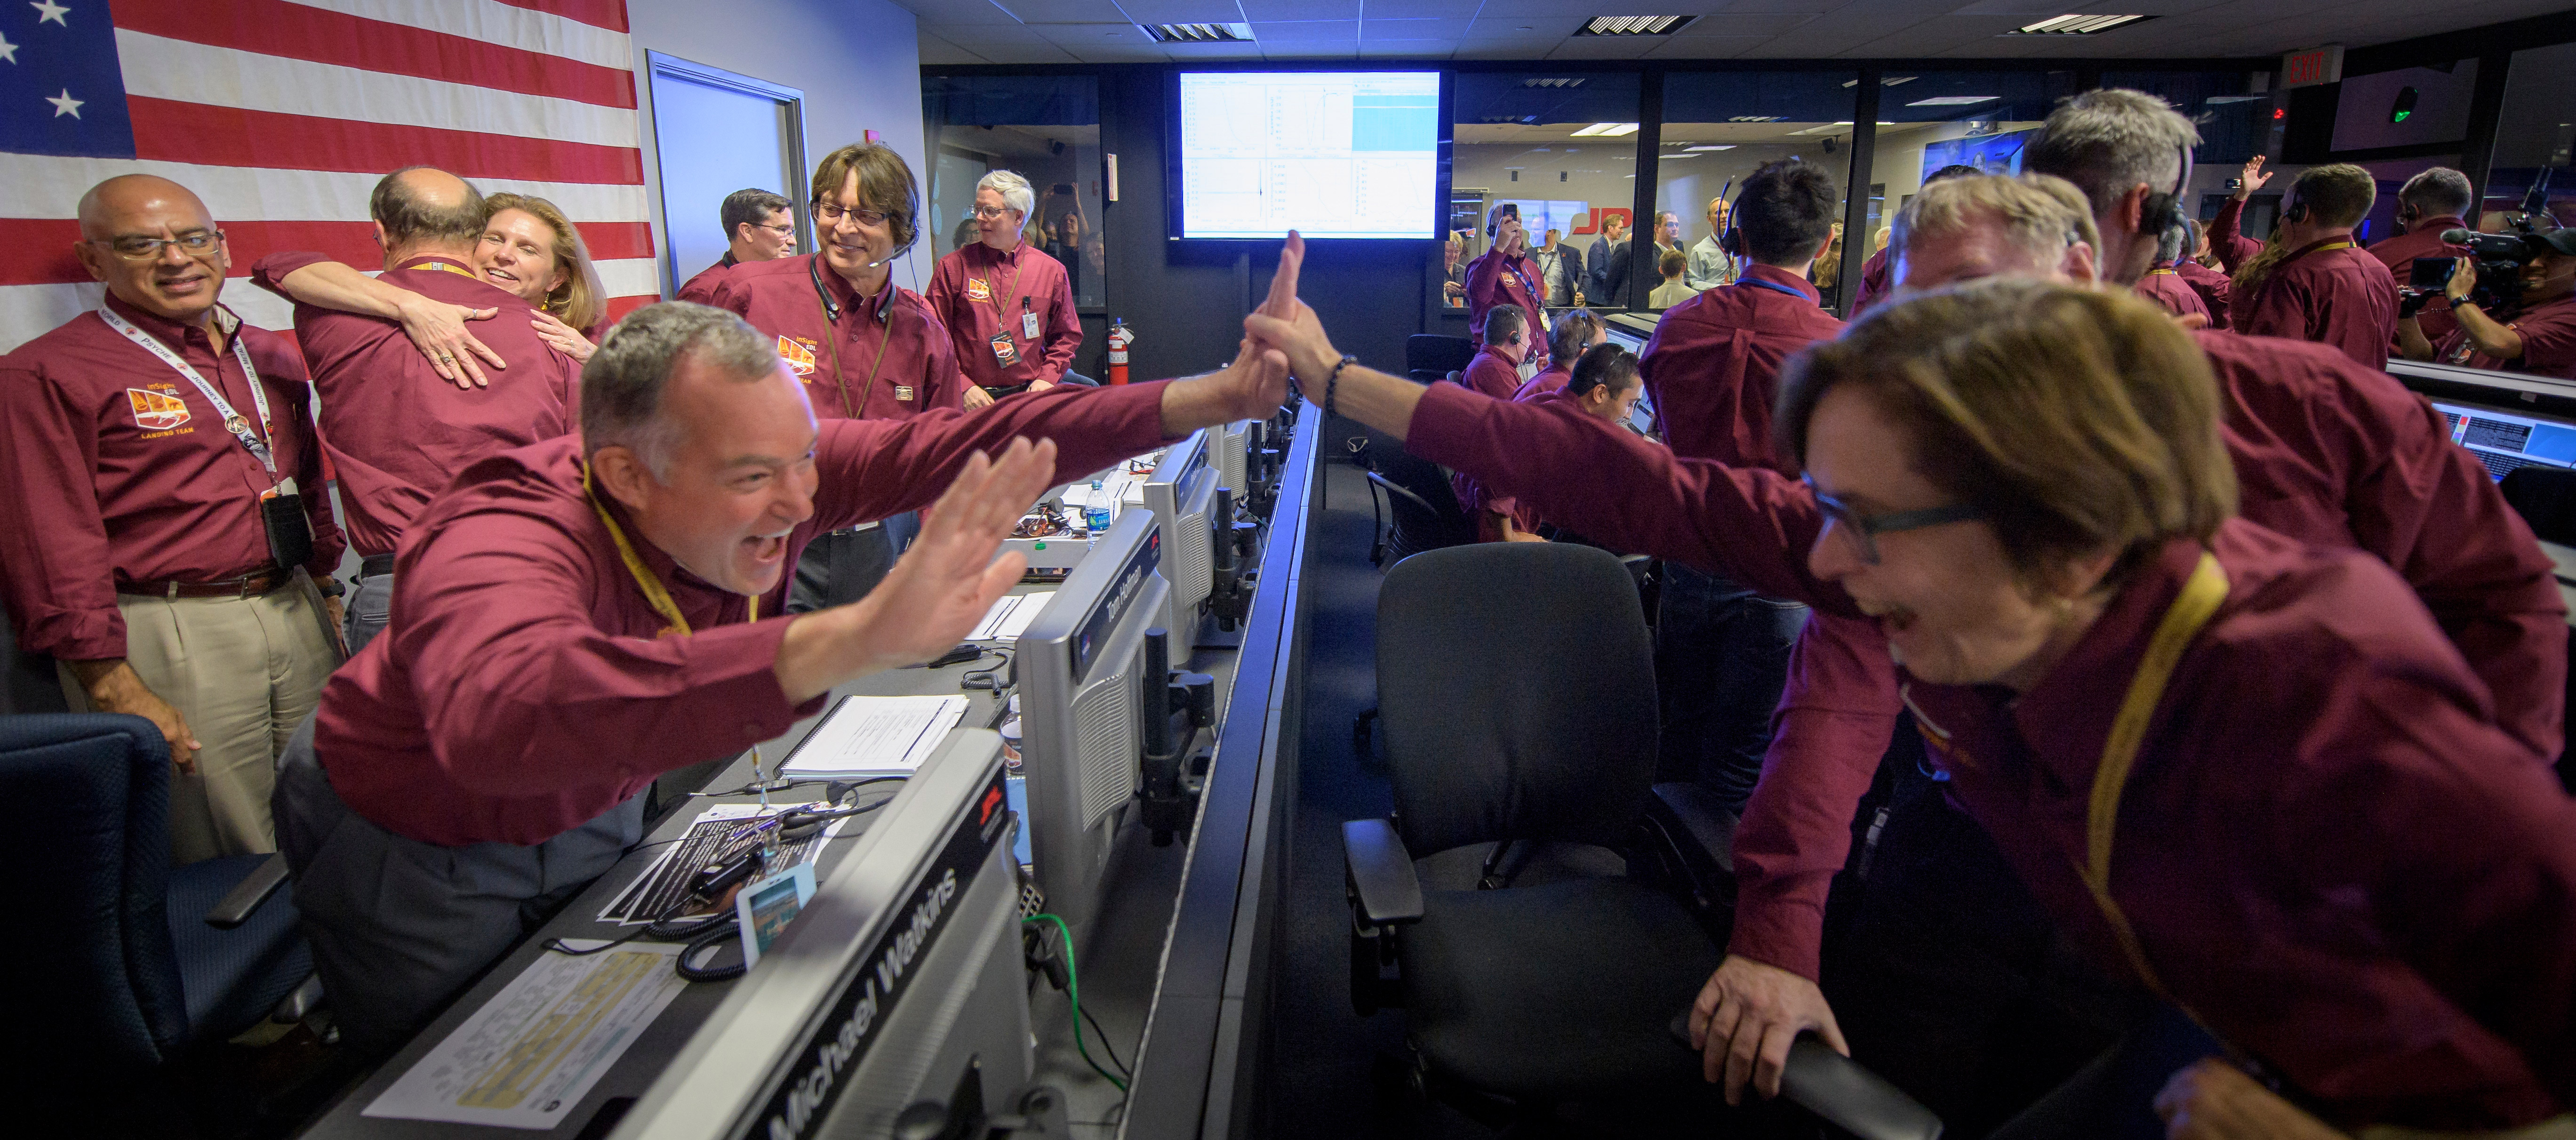 Tom Hoffman, InSight Project Manager, NASA JPL, left, and Sue Smrekar, InSight deputy principal investigator, NASA JPL, react after receiving confirmation that the Mars InSight lander successfully touched down on the surface of Mars, Monday, Nov. 26, 2018 inside the Mission Support Area at NASA's Jet Propulsion Laboratory in Pasadena, California.